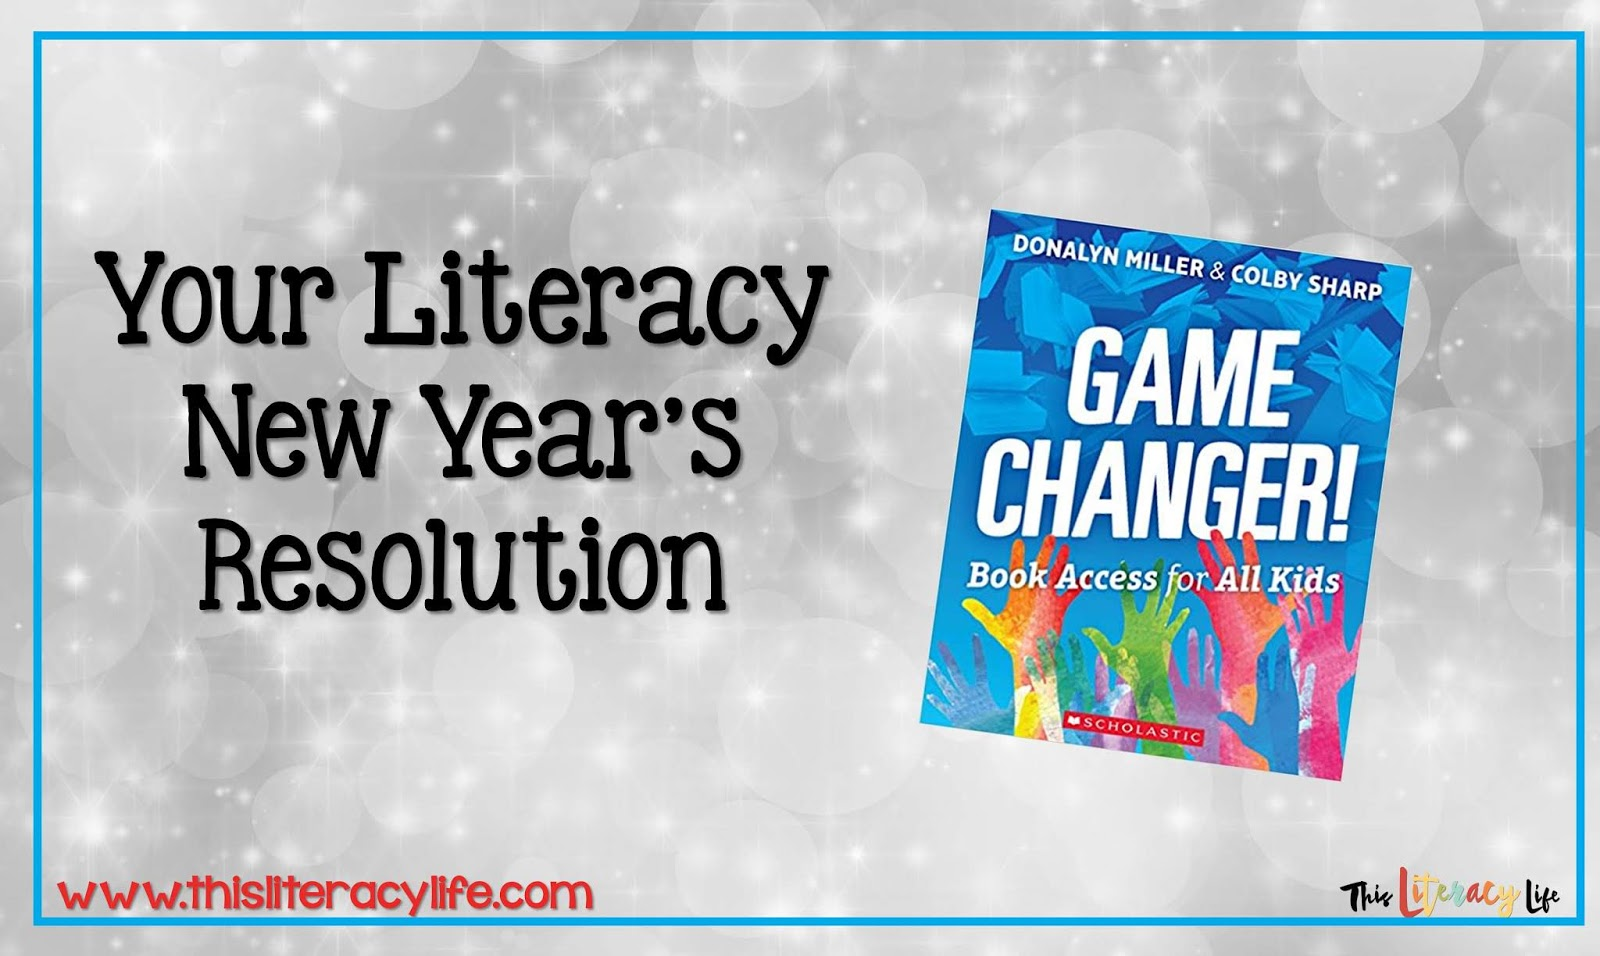 It's never too late to change your students' reading habits! Finding new ways to help our students love reading is easy with this amazing book by Donalyn Miller and Colby Sharp.